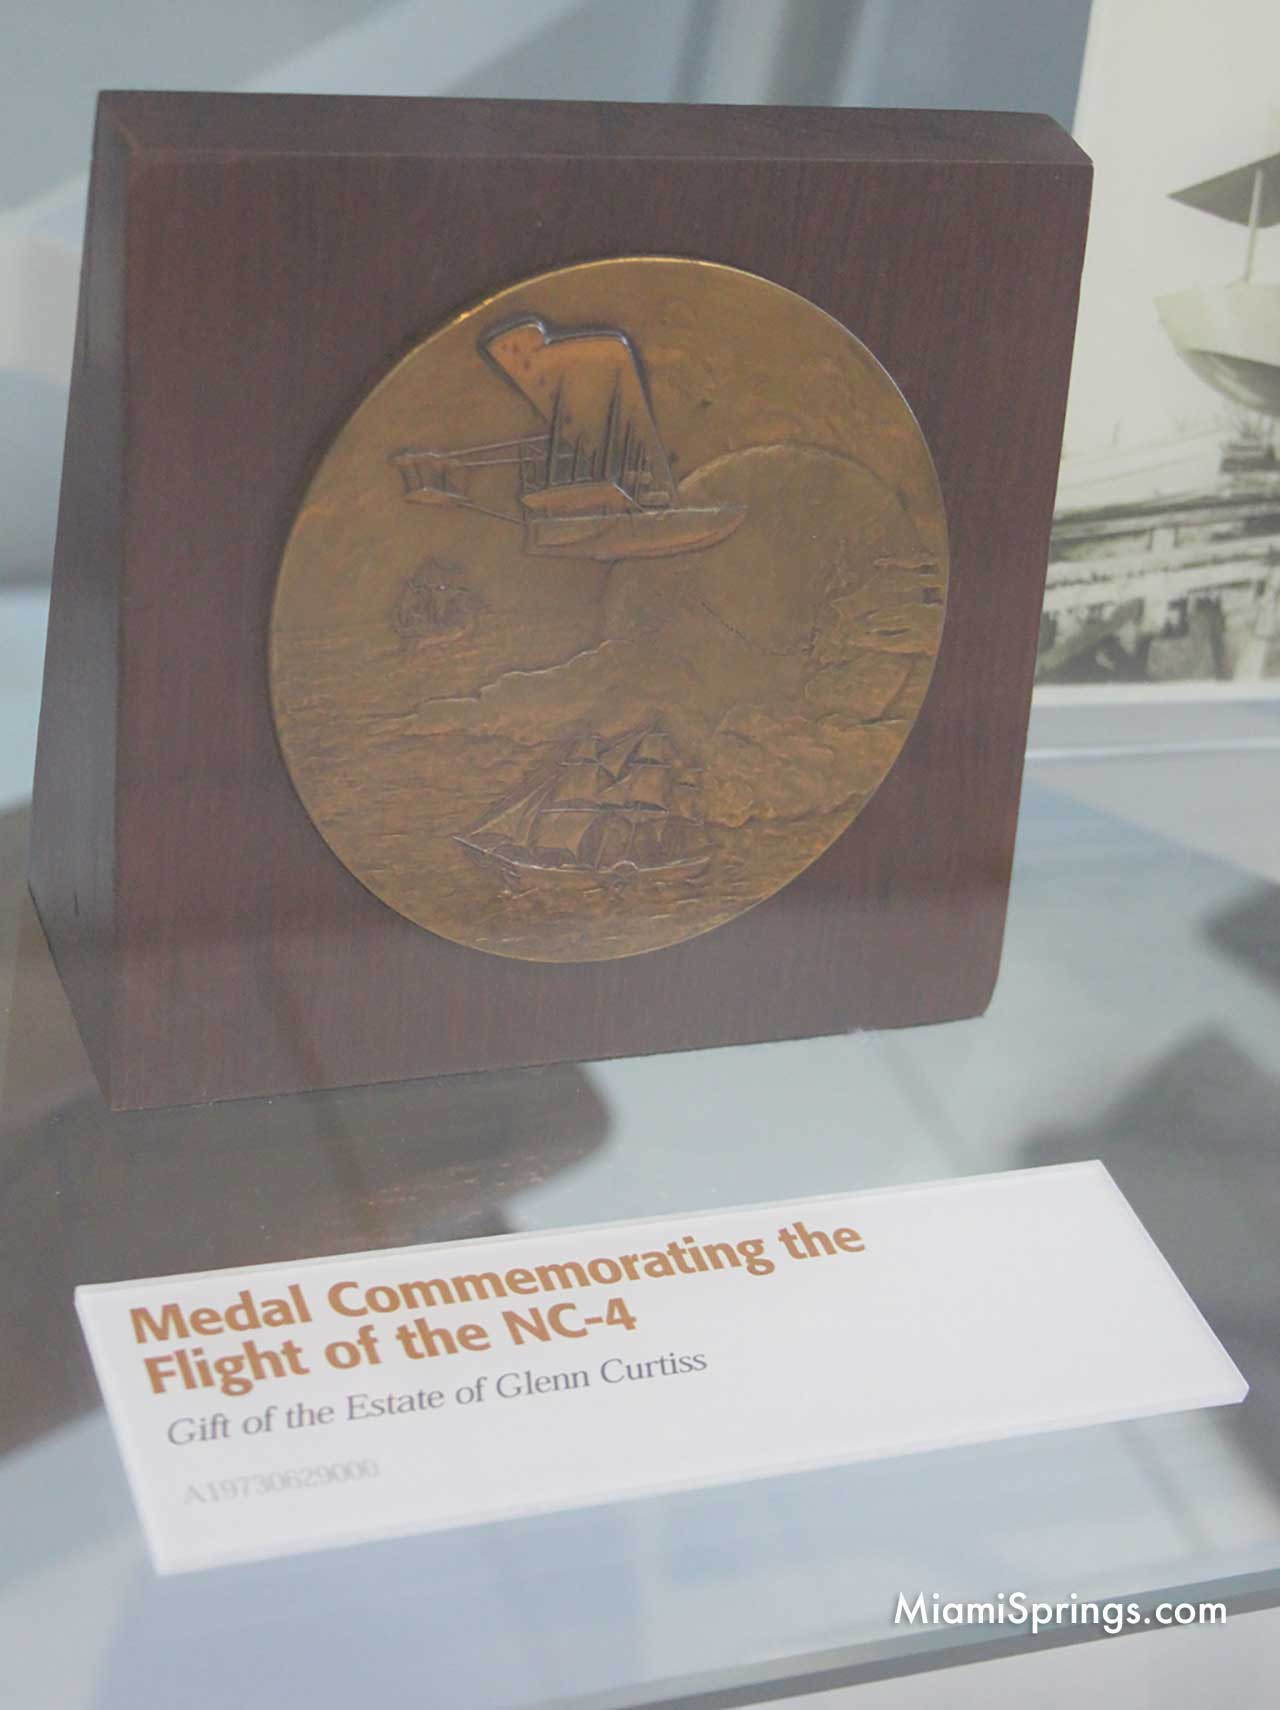 Medal Commemorating the Flight of the NC-4